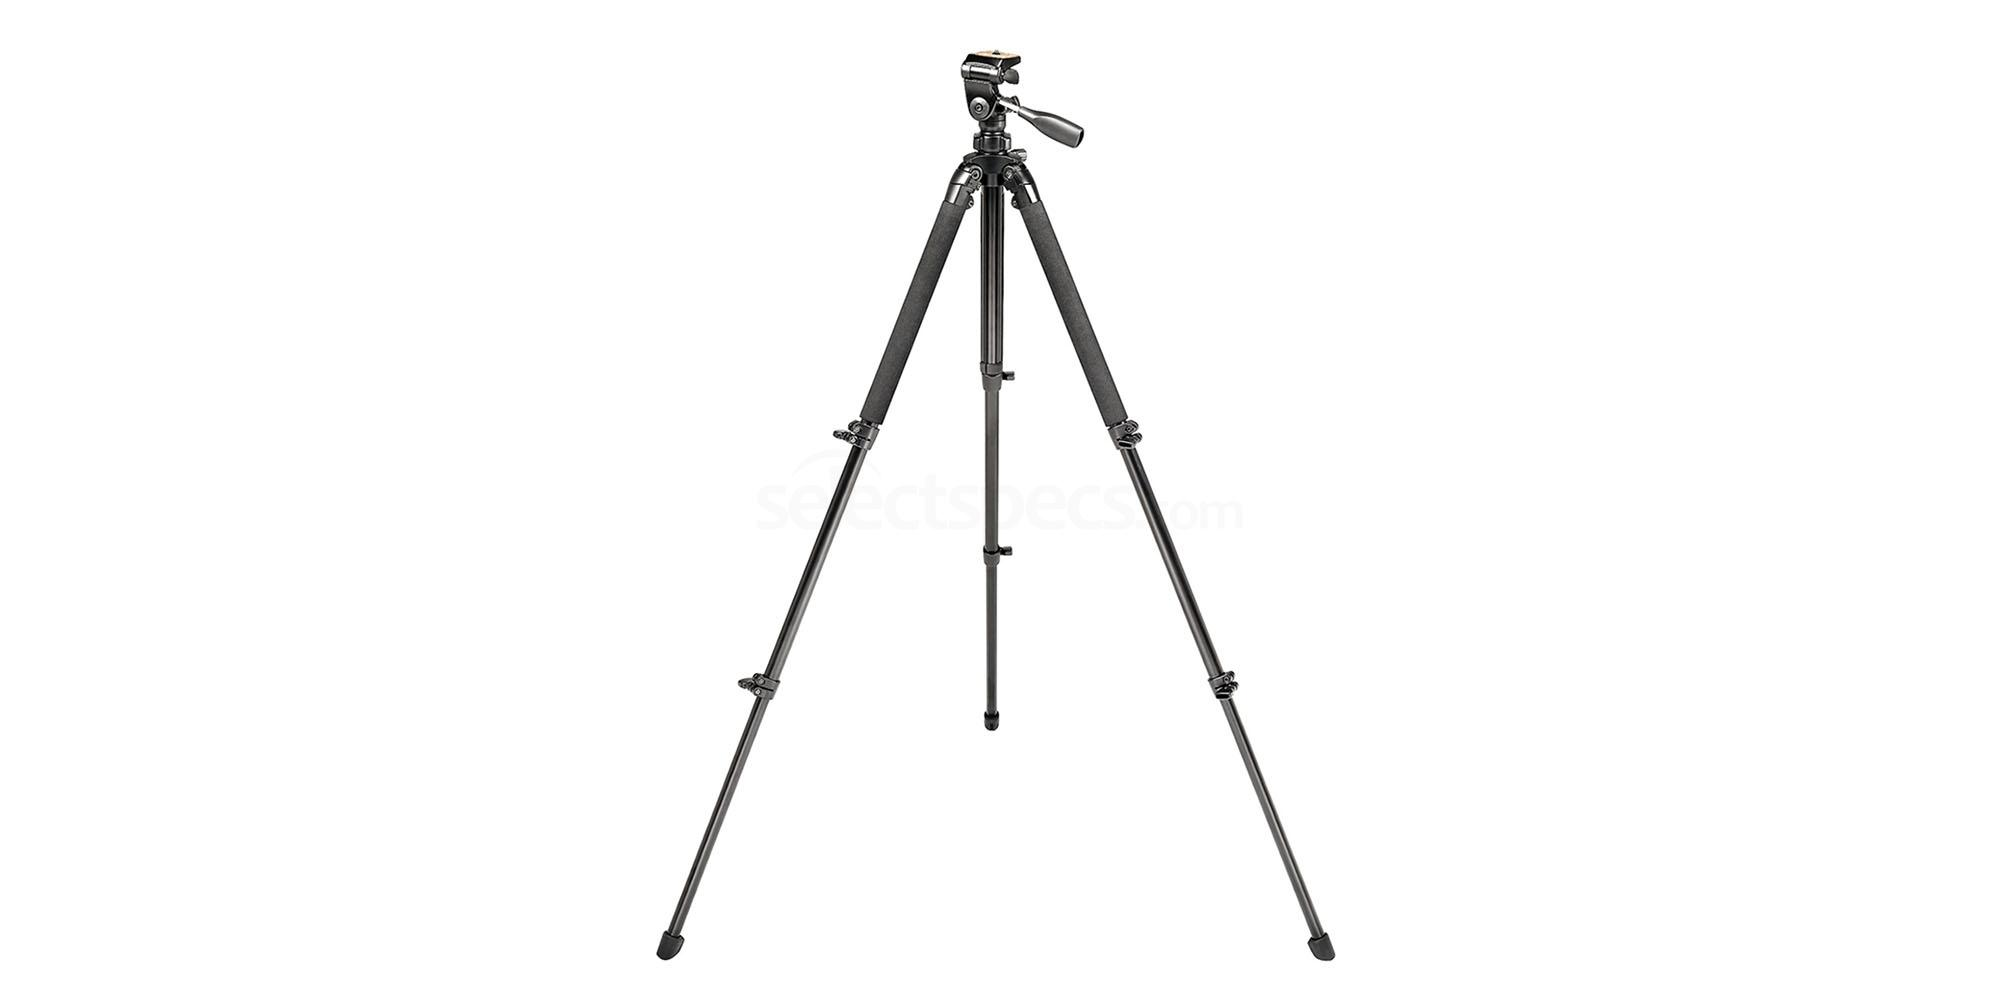 784030 SPOTTING SCOPES TRIPODS Accessories, Bolle